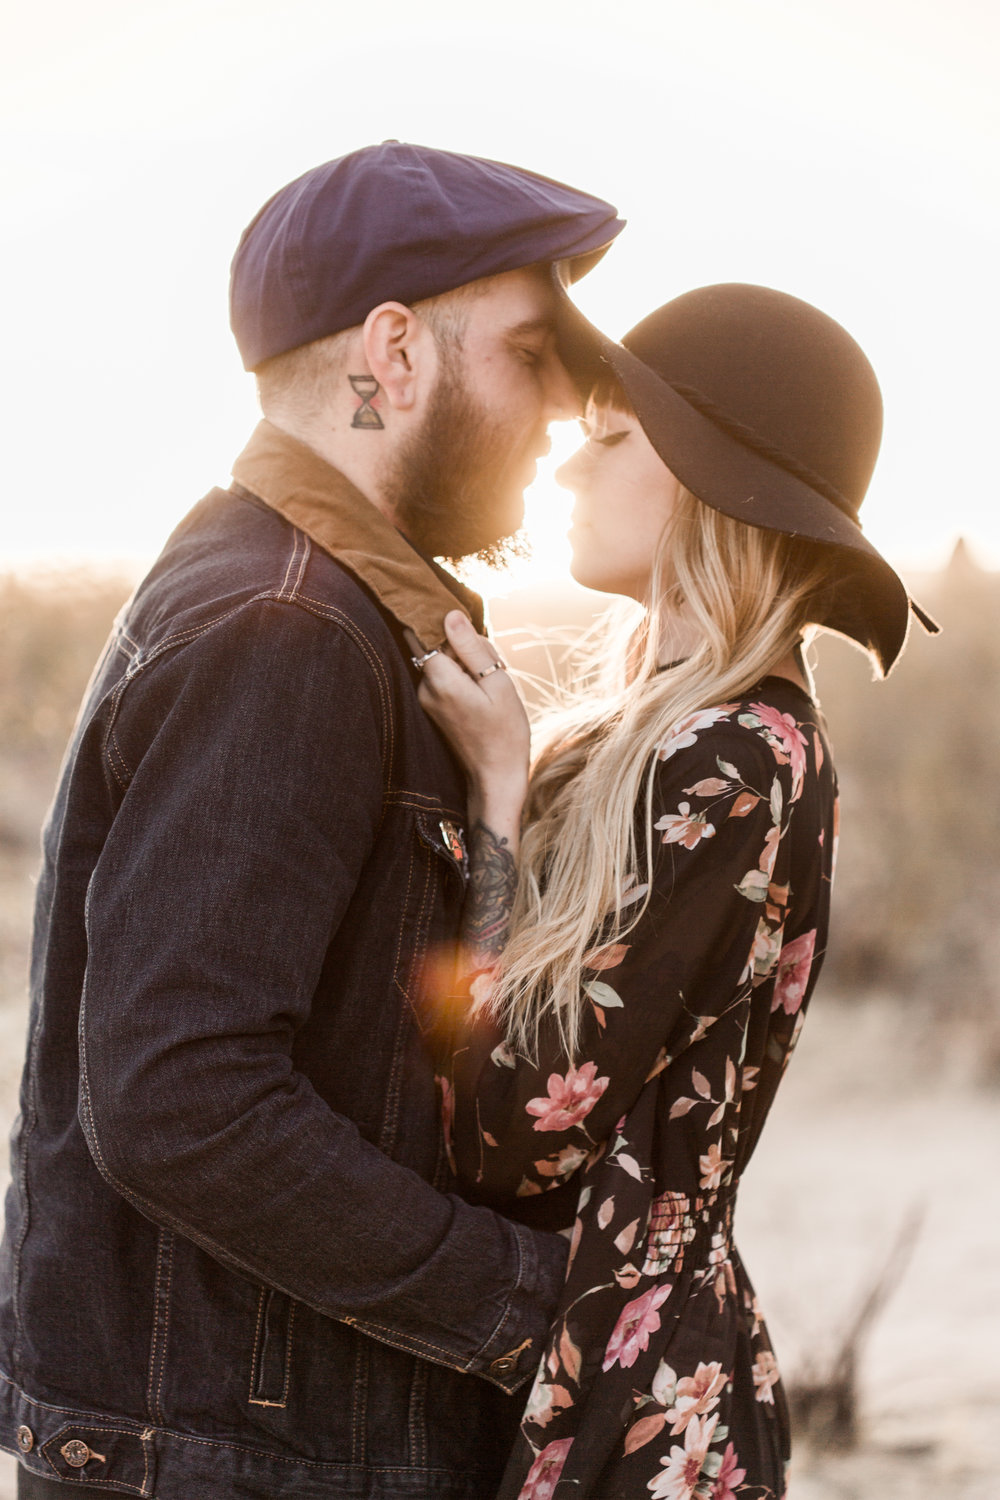 nicole-daacke-photography-joshua-tree-cactus-garden-engagement-photos-joshua-tree-national-park-enegagement-session-edgy-hipster-california-cholla-garden-golden-sunset-session-71.jpg